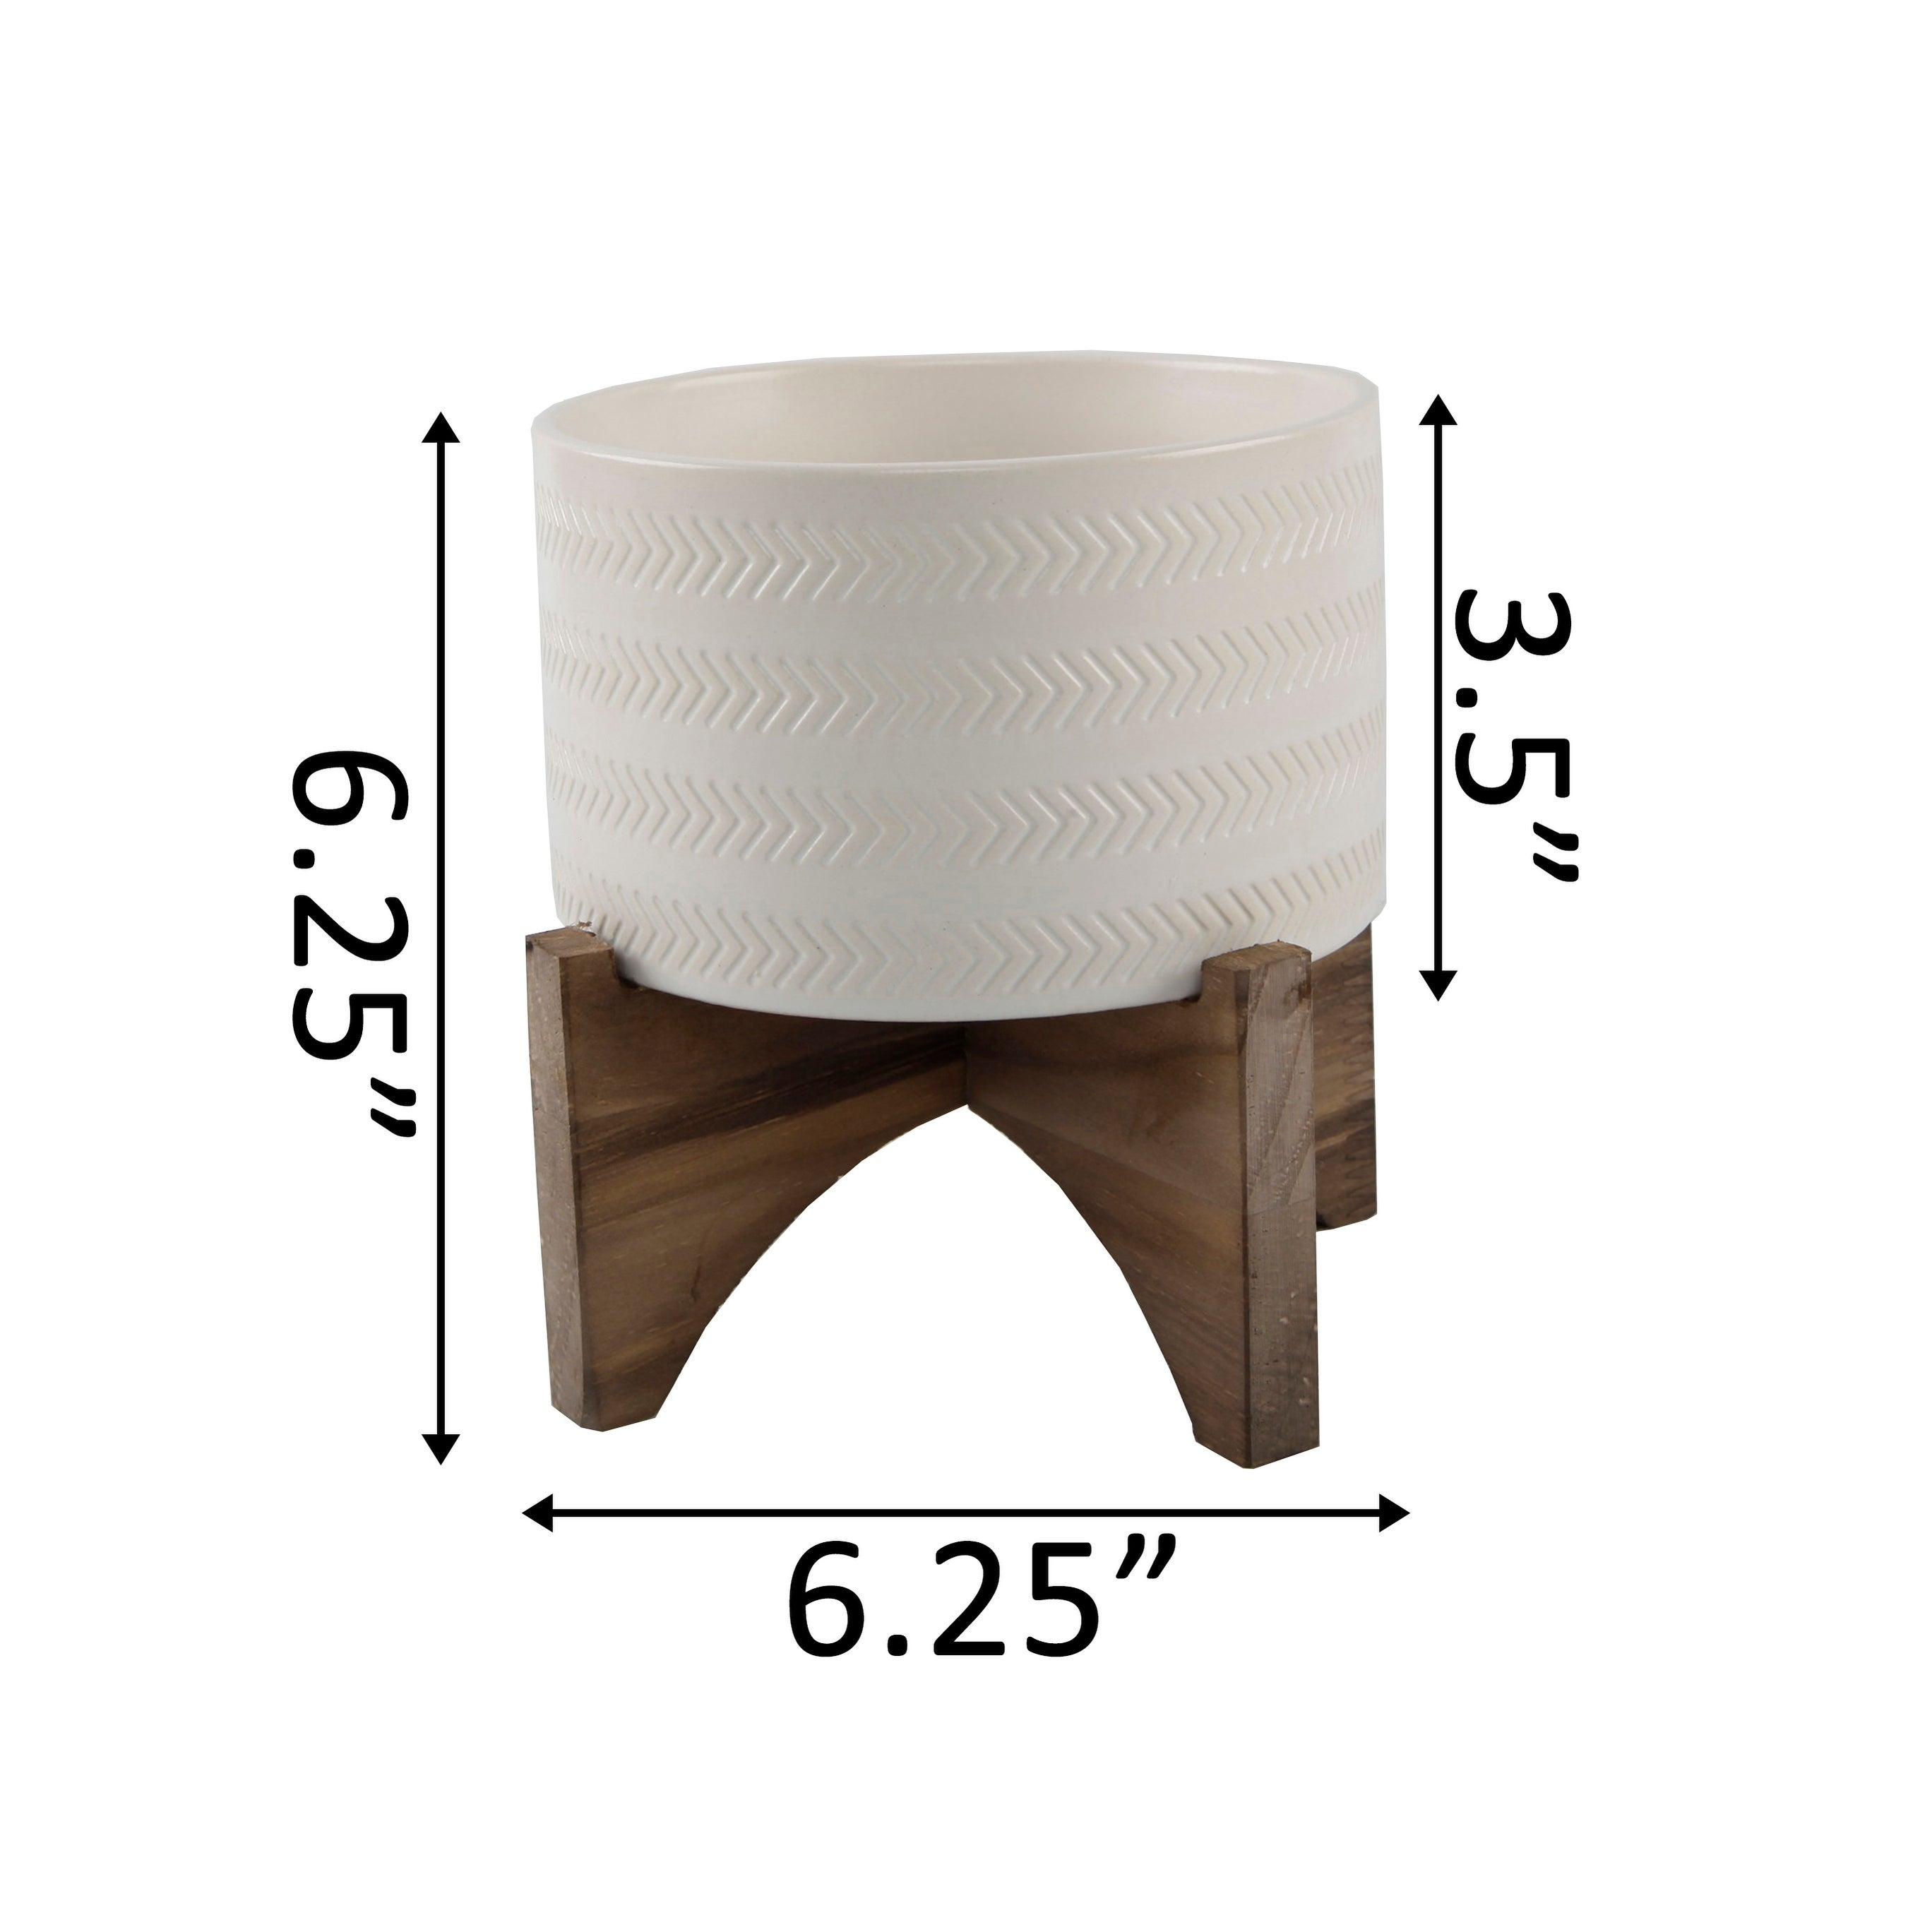 Mid Century 5 Arrow Ceramic Planter On Wood Stand Matte White Overstock 31602508 Blue And thus, during diamond is unbreakable, he switches to a white outfit to make it less noticeable. mid century 5 arrow ceramic planter on wood stand matte white